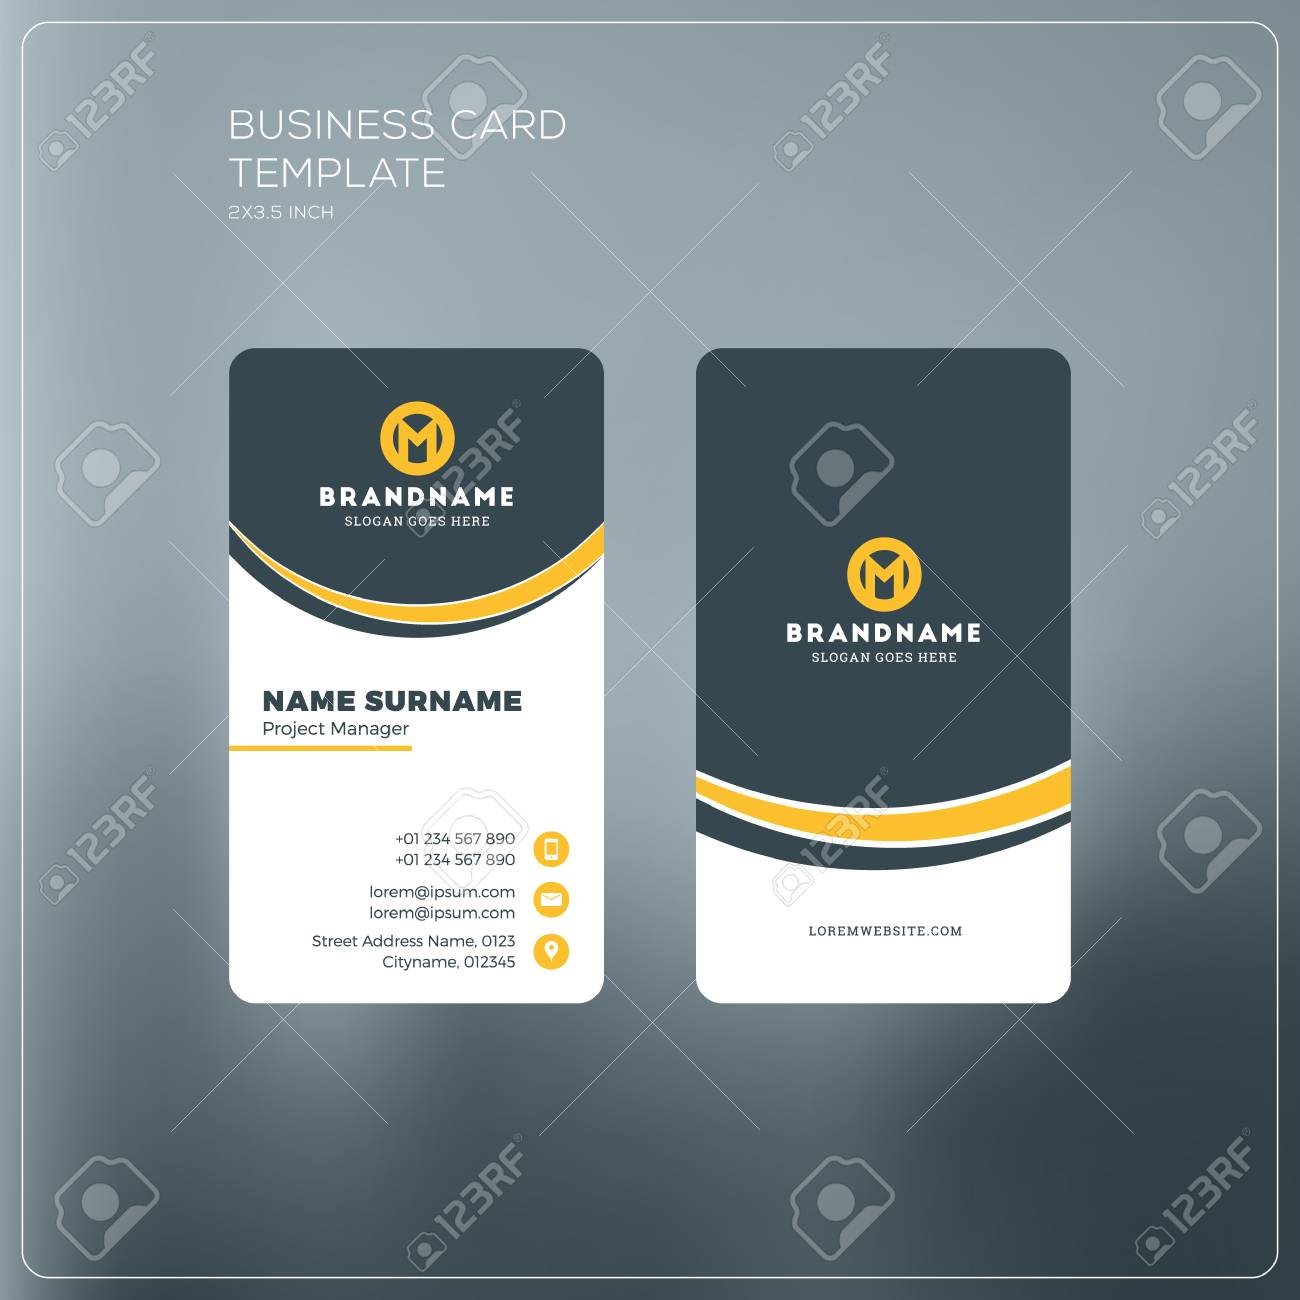 Vertical business card print template personal business card vector vertical business card print template personal business card with company logo black and yellow colors clean flat design vector illustration friedricerecipe Image collections